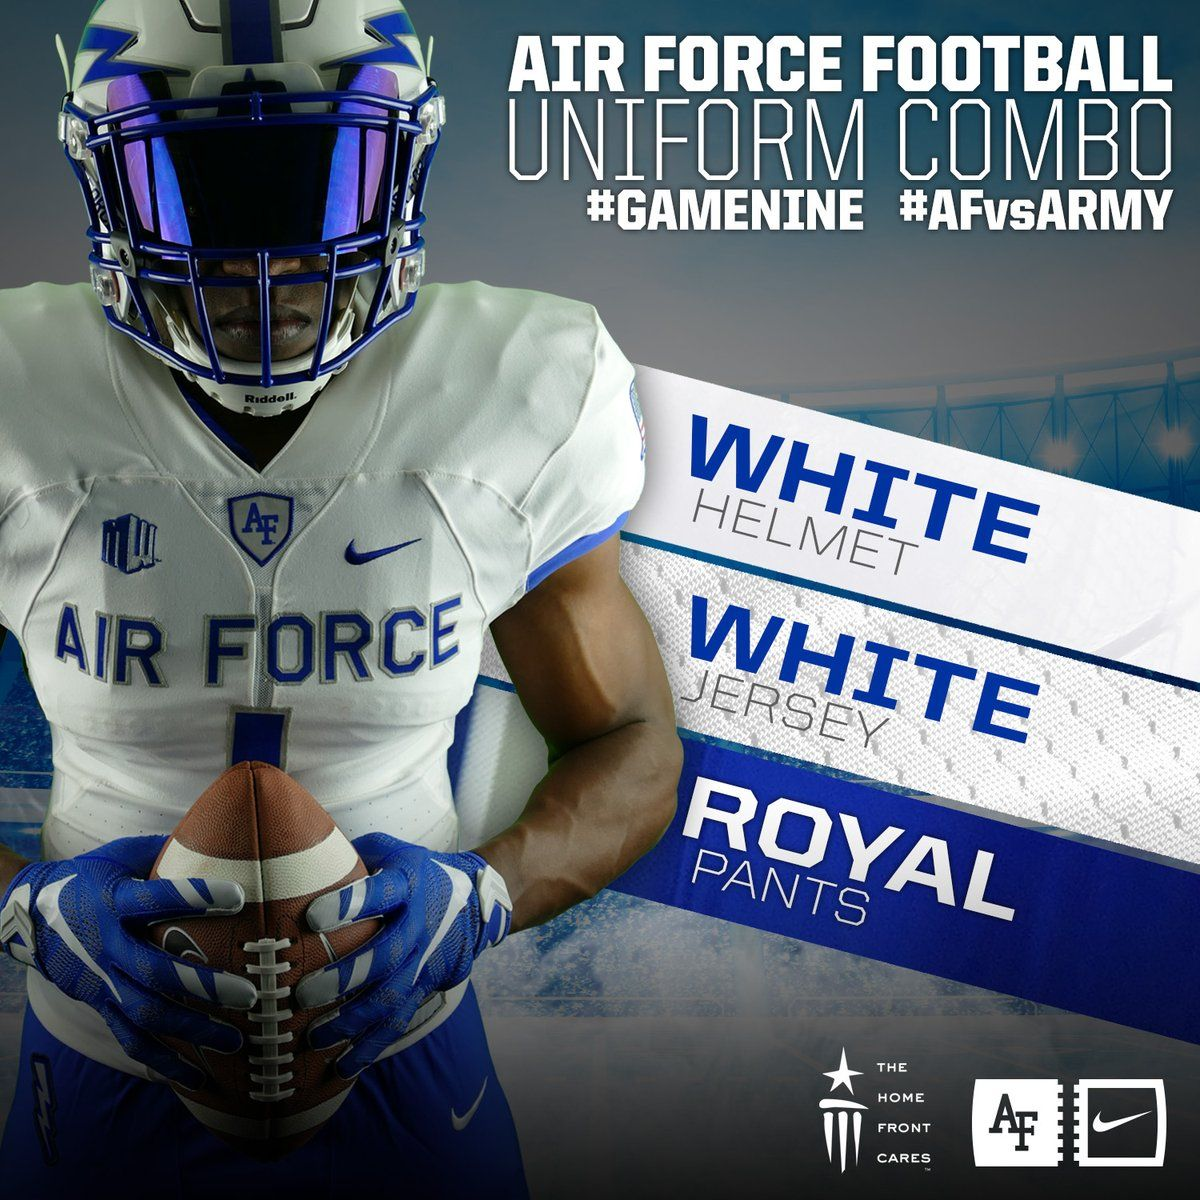 Air Force Football Uniforms Sports Design White Jersey